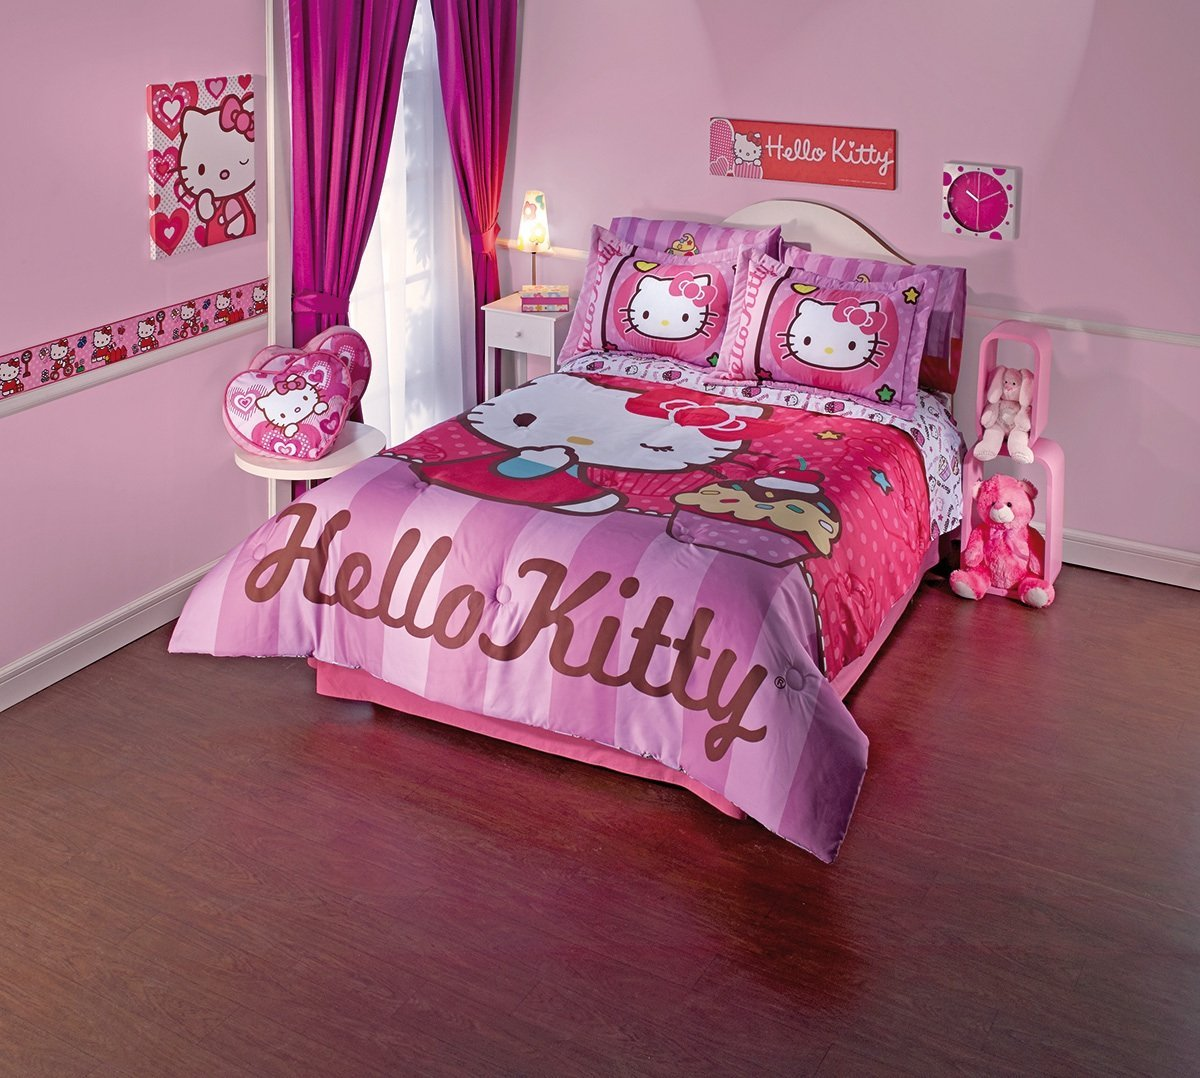 Charmant New Hello Kitty Comforter Sheet Set Full Size